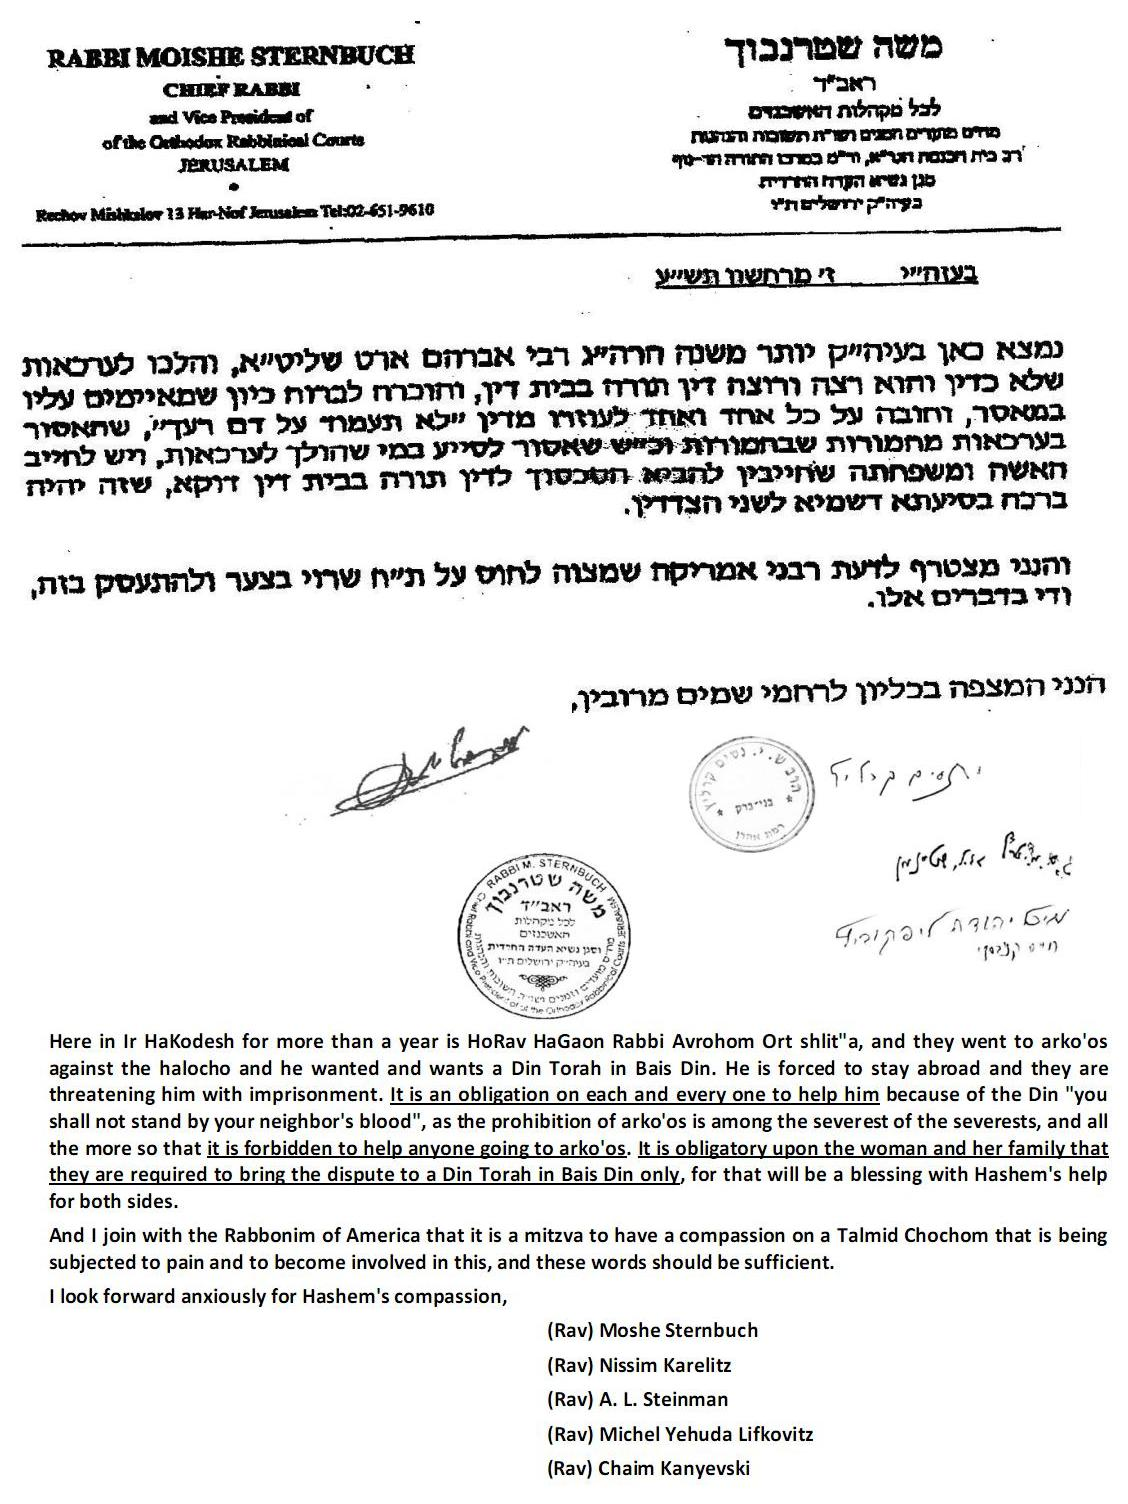 letter-from-rav-shternbuch